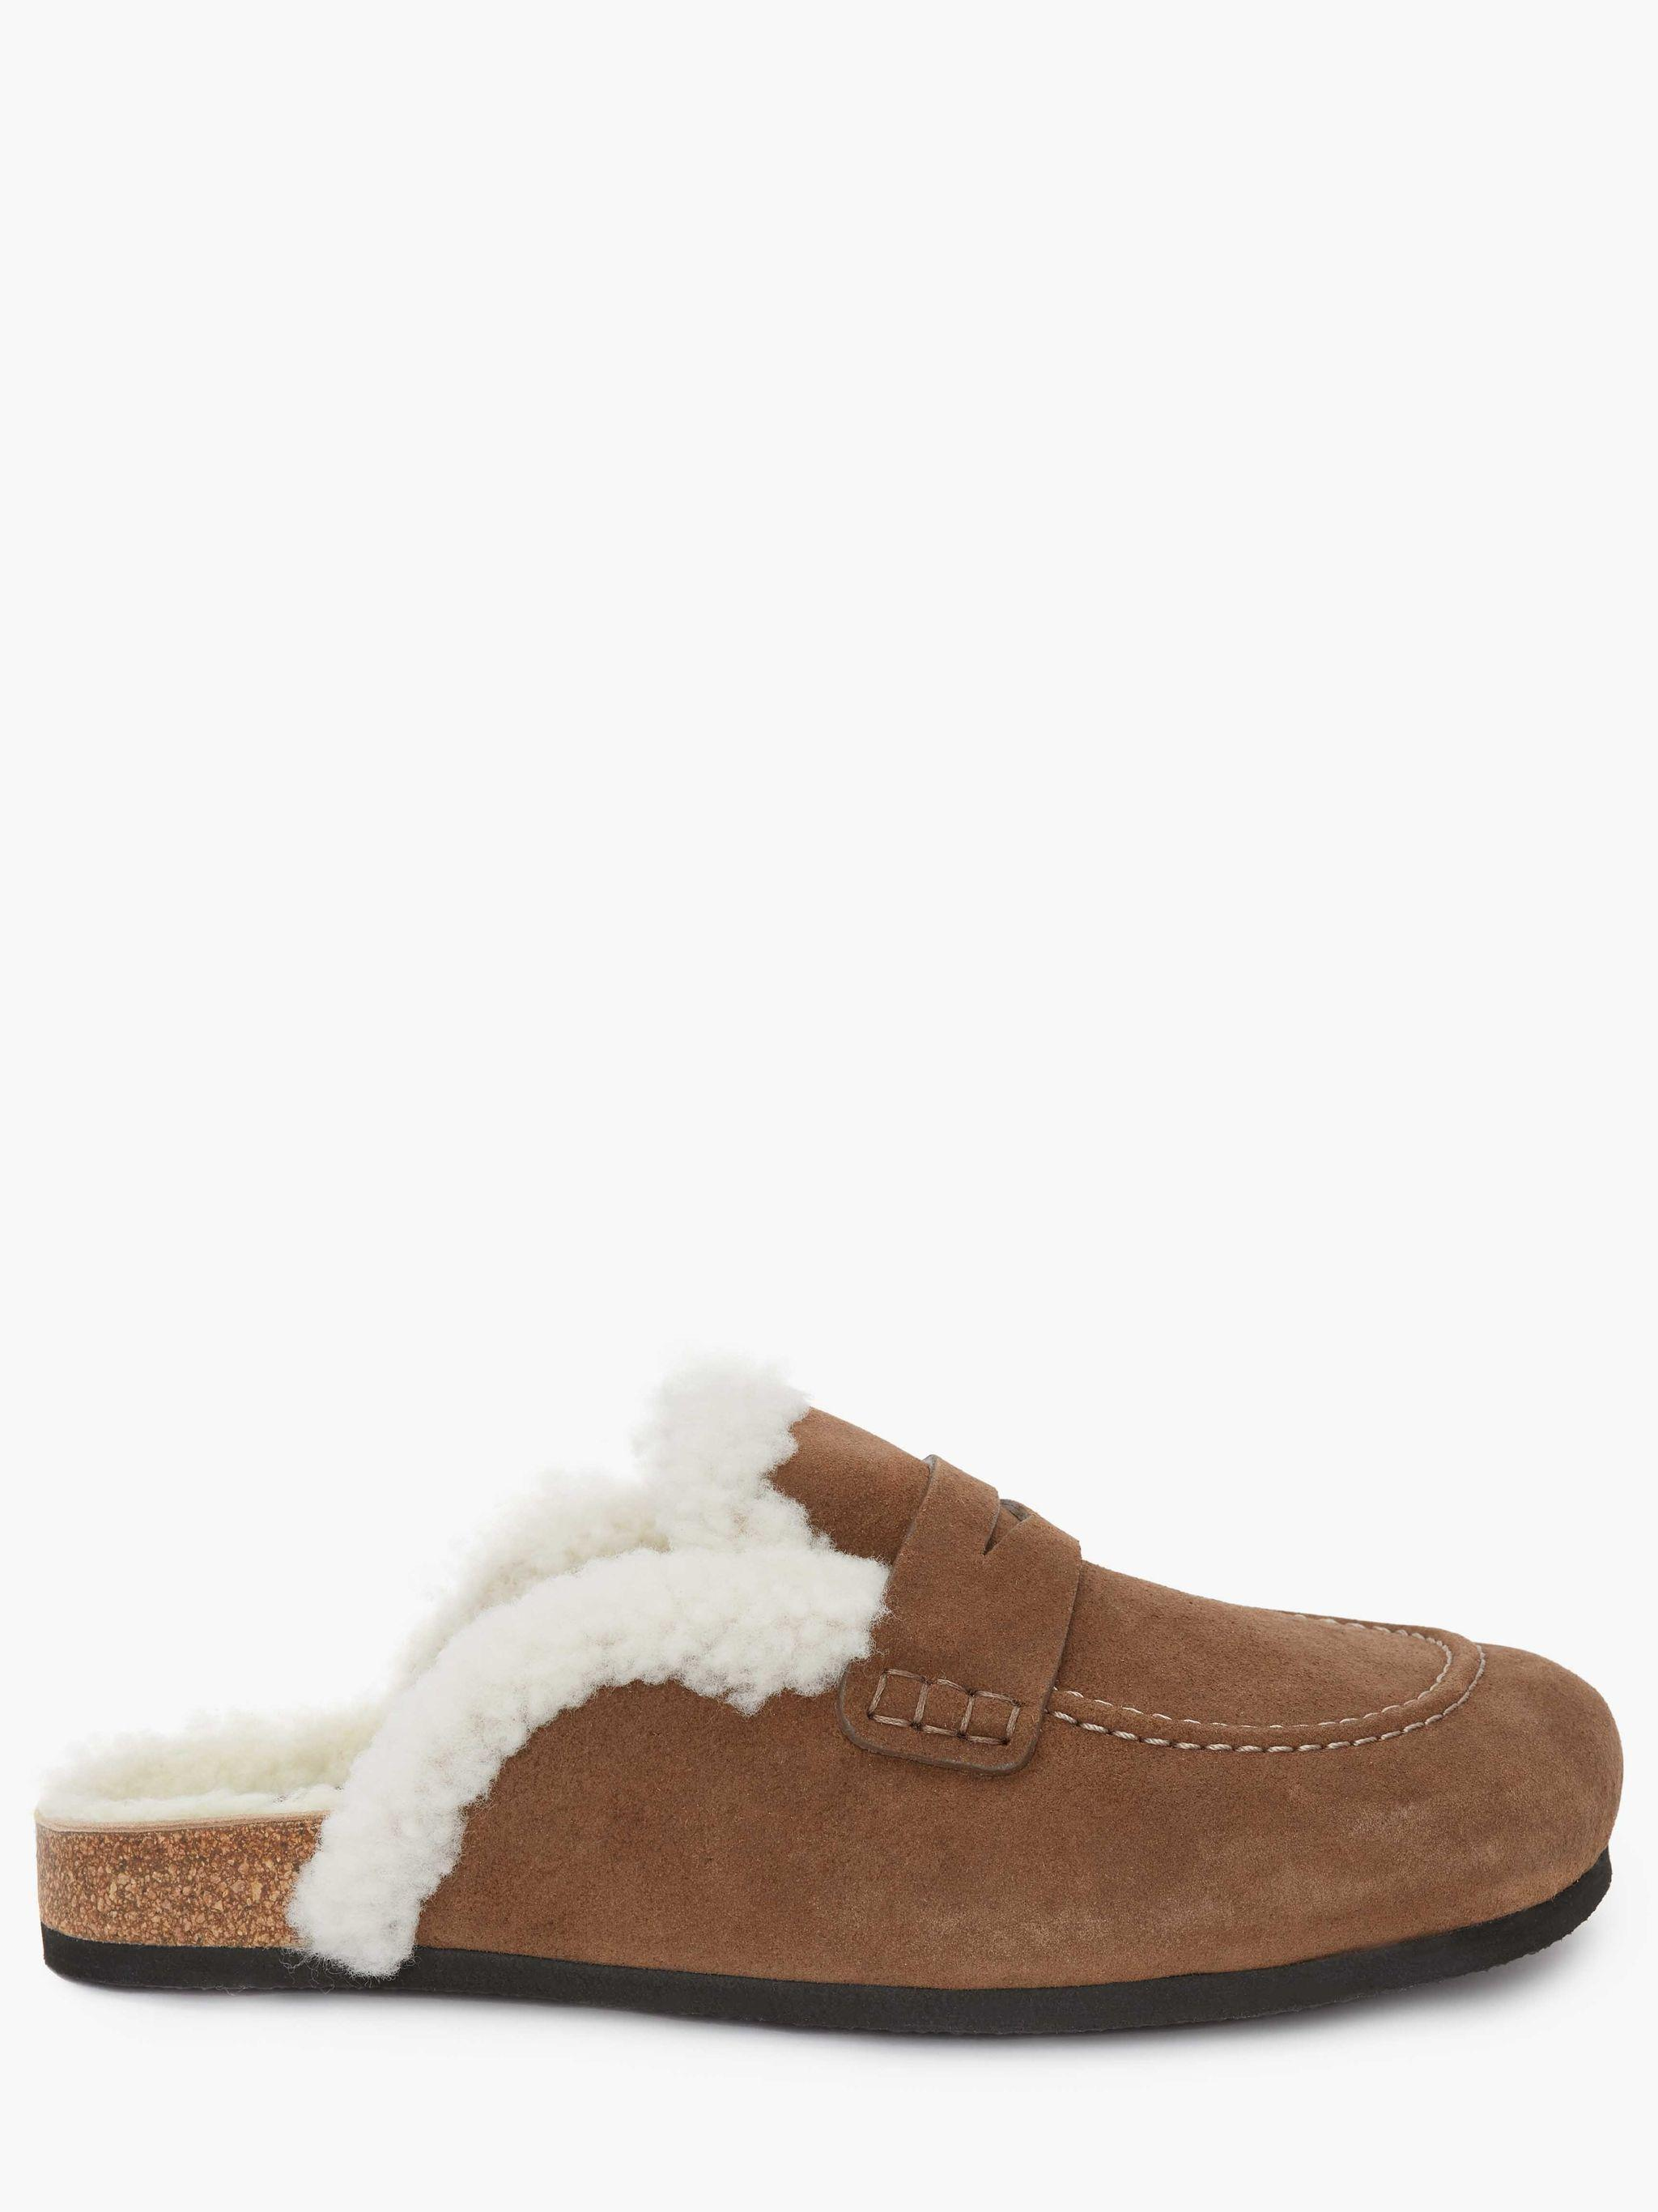 WOMEN'S SHEARLING LOAFER MULES